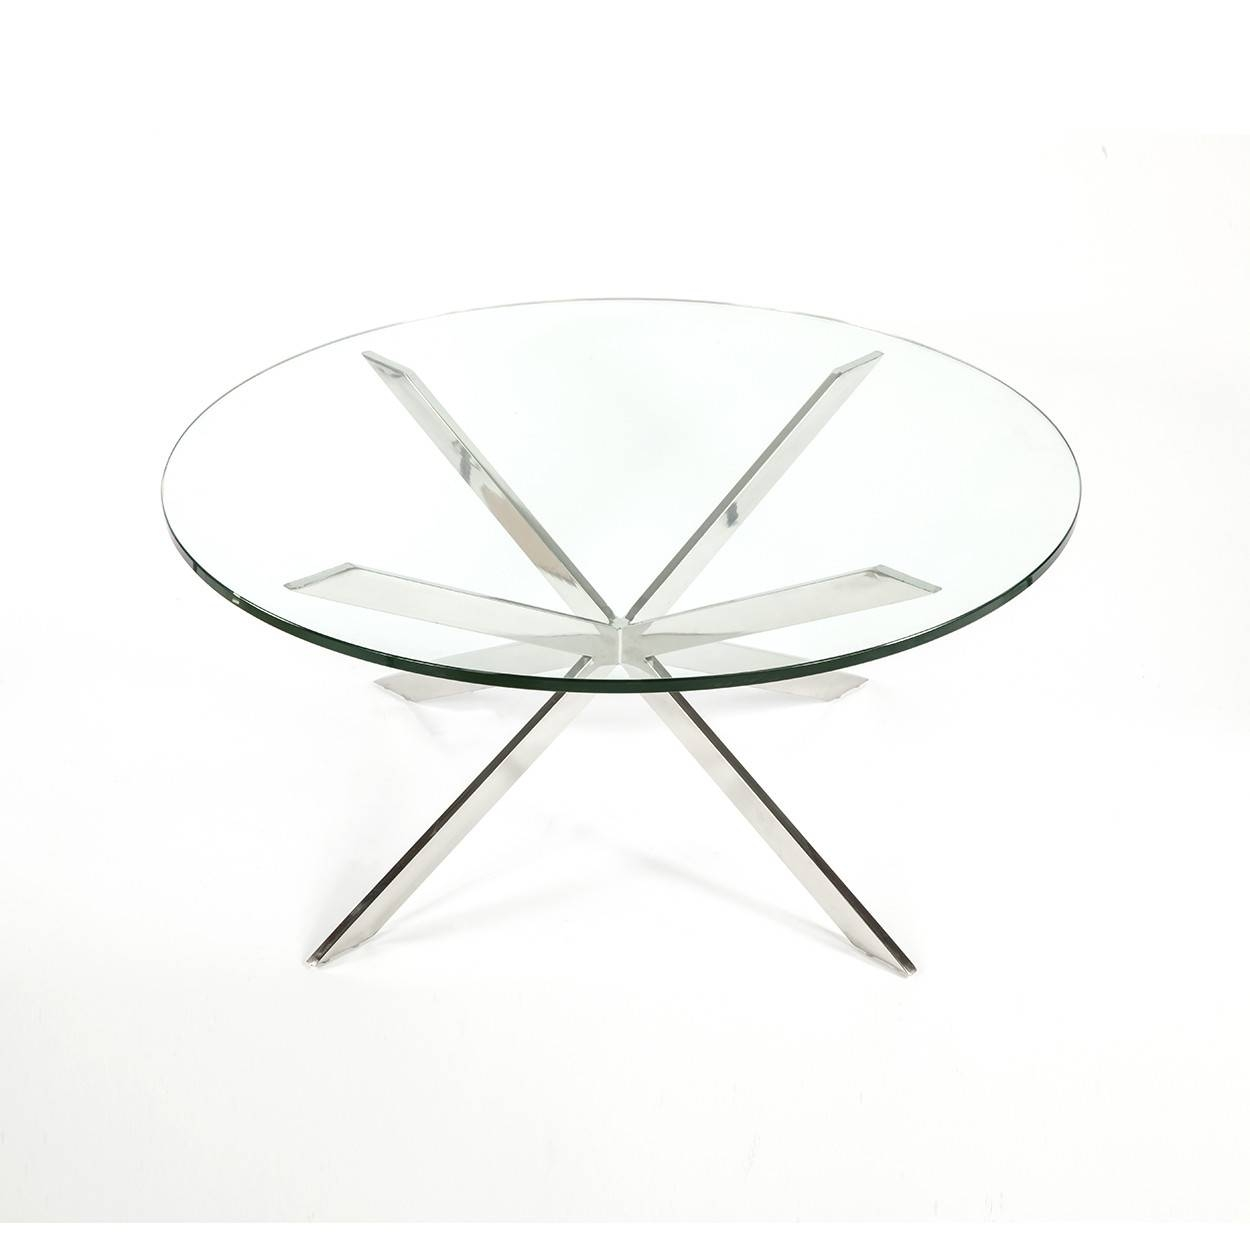 Mid-Century Modern Reproduction Chrome Star X Base intended for Chrome Coffee Table Bases (Image 23 of 30)